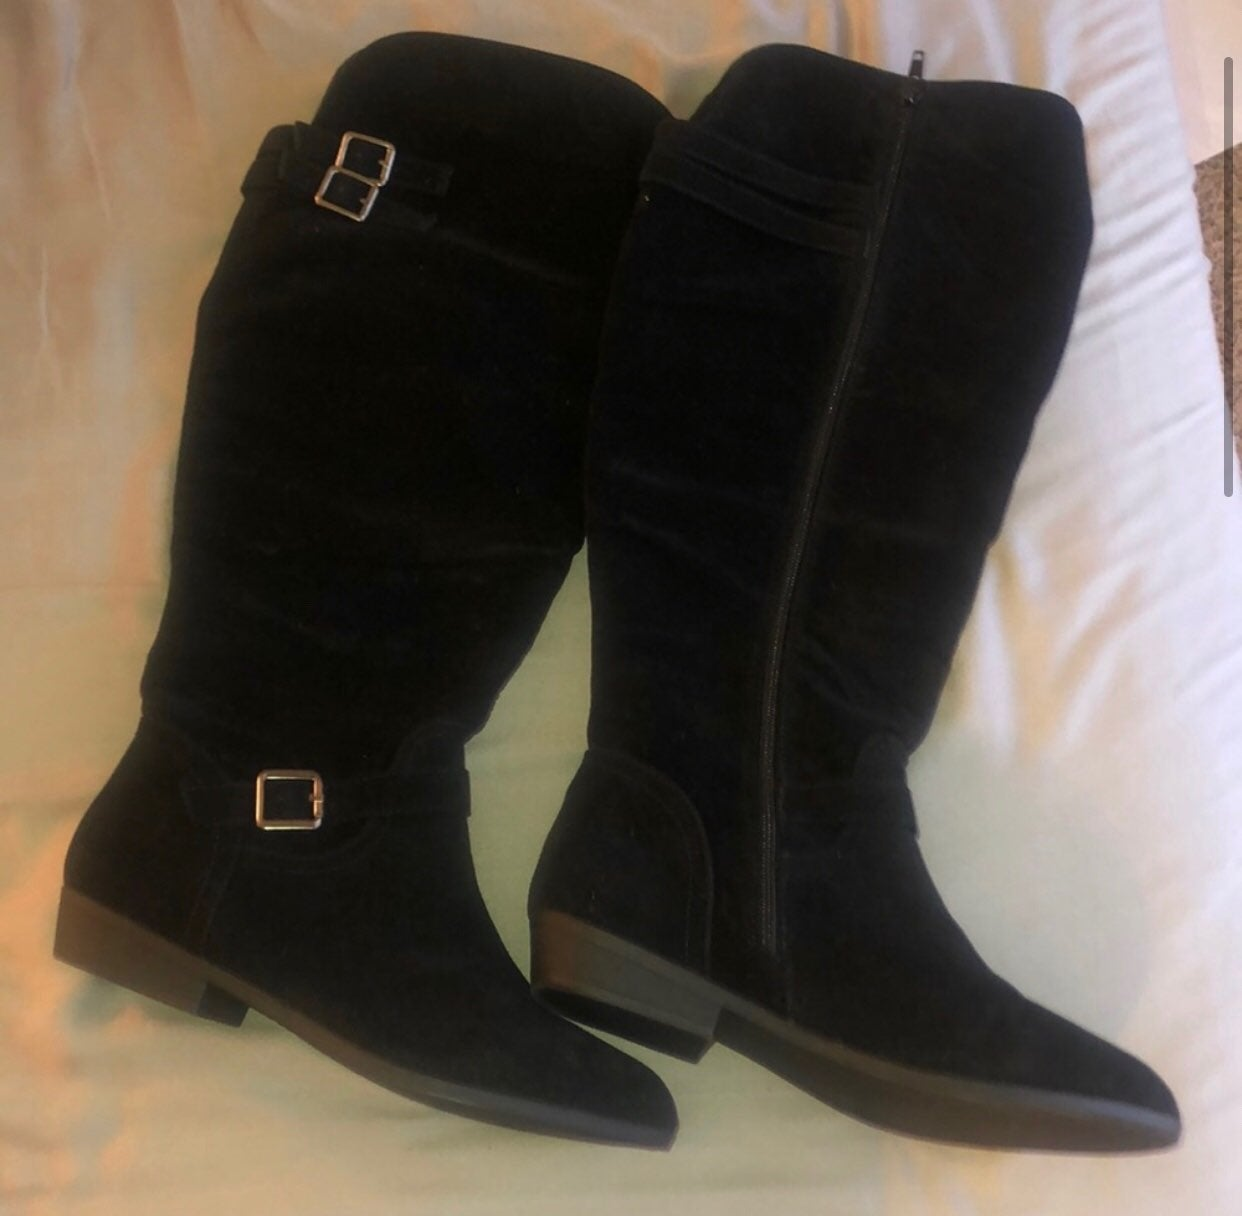 justfab black tall boots size 9 wide cal